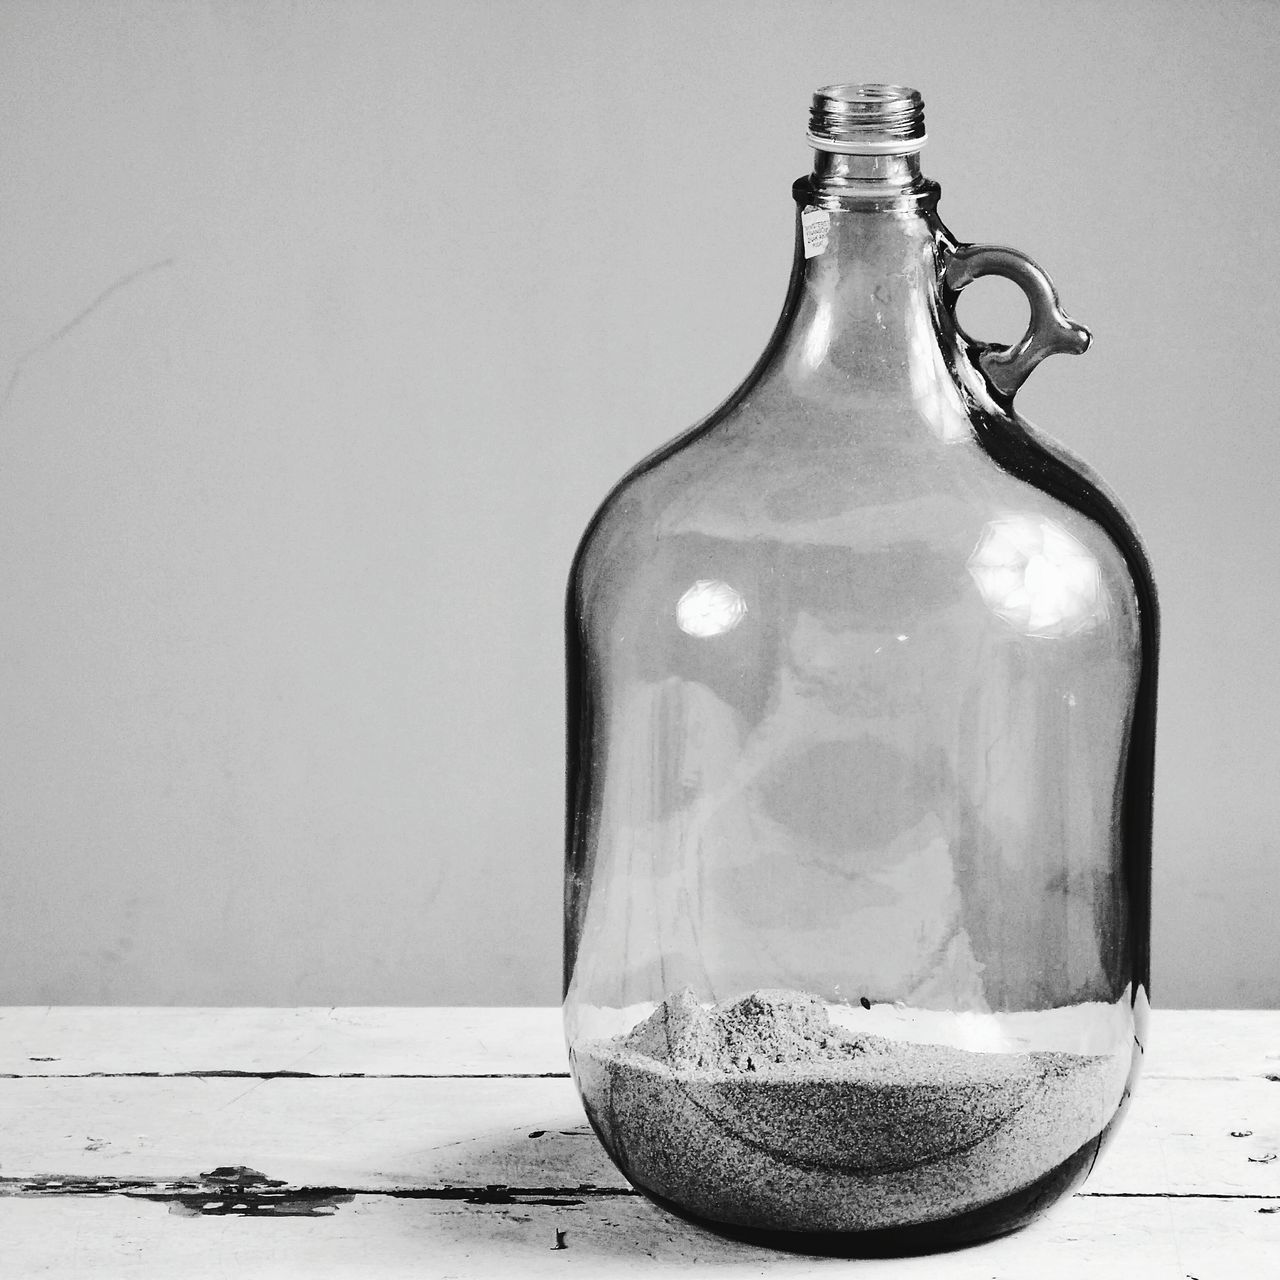 Black And White Bottle Glass Wood Blackandwhite Photography Sand Everything In Its Place